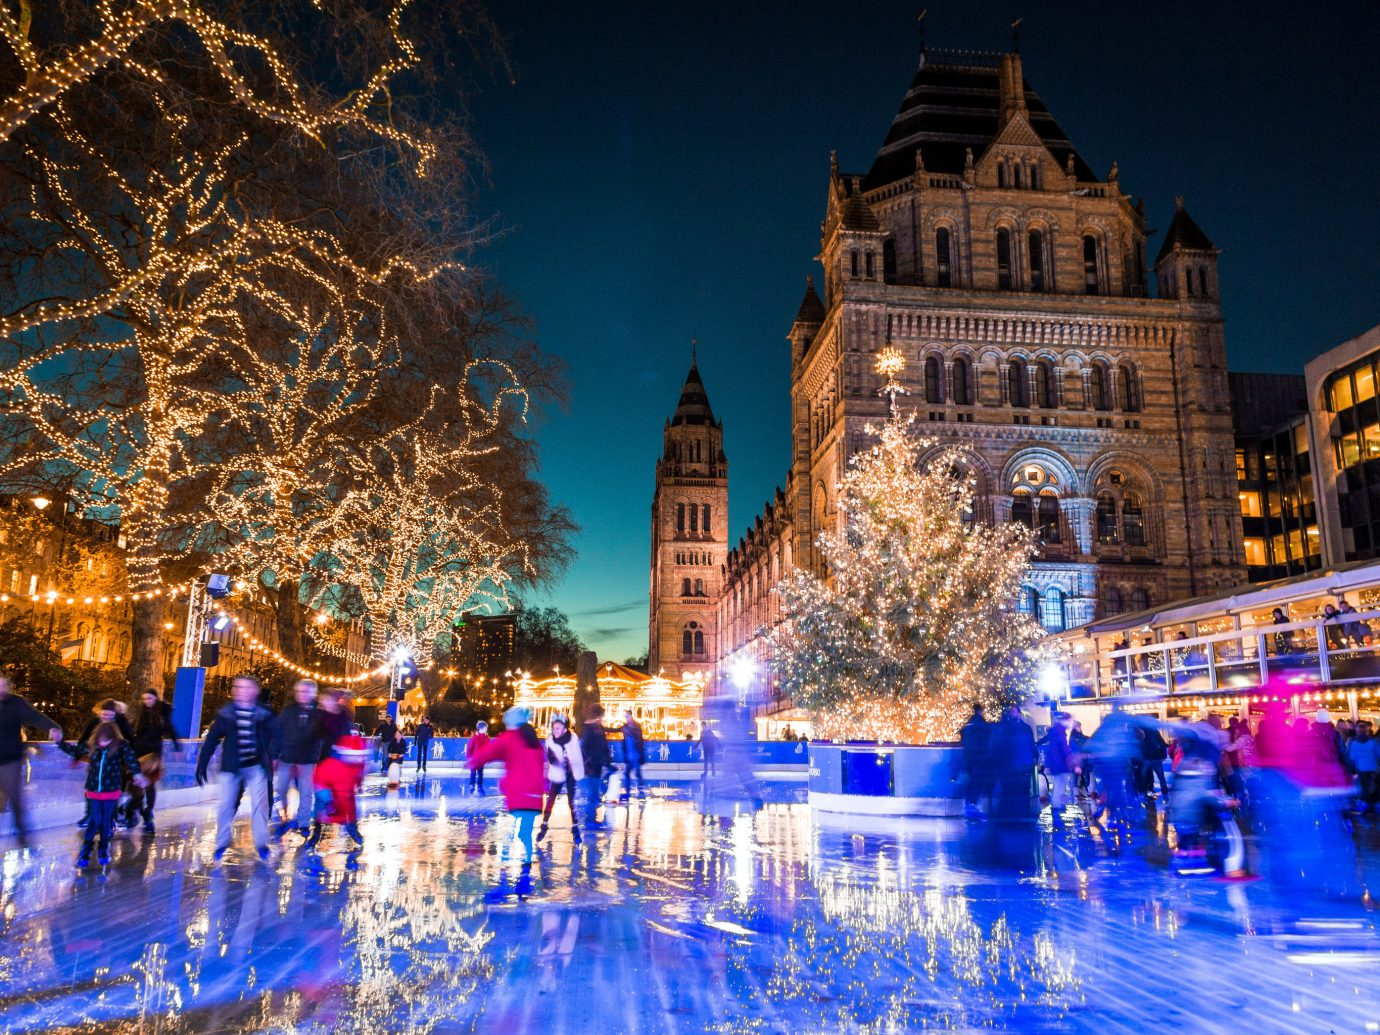 Trip Ideas building outdoor night tree group Christmas christmas decoration Christmas tree christmas lights Winter Resort evening ice rink holiday amusement park plaza cityscape several